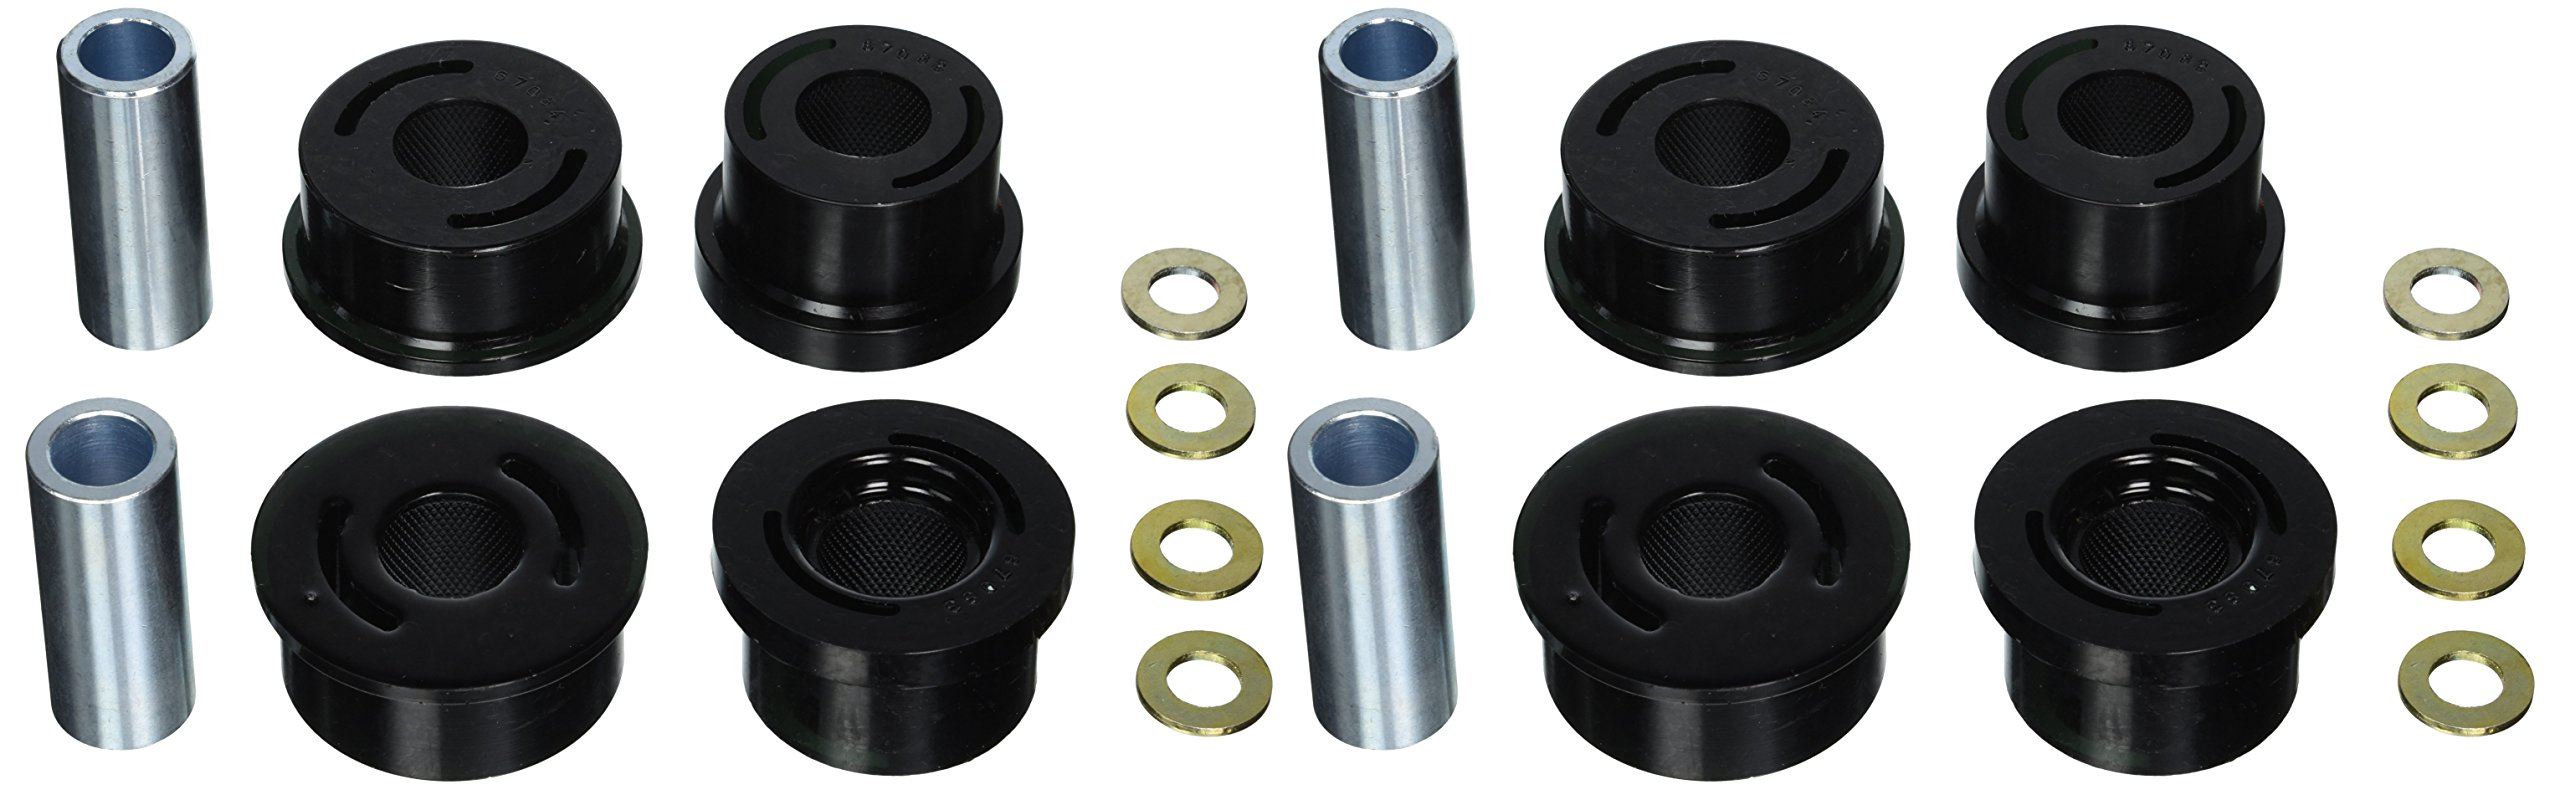 Whiteline W92994 Rear Subframe Mount Bushing by Whiteline (Image #1)